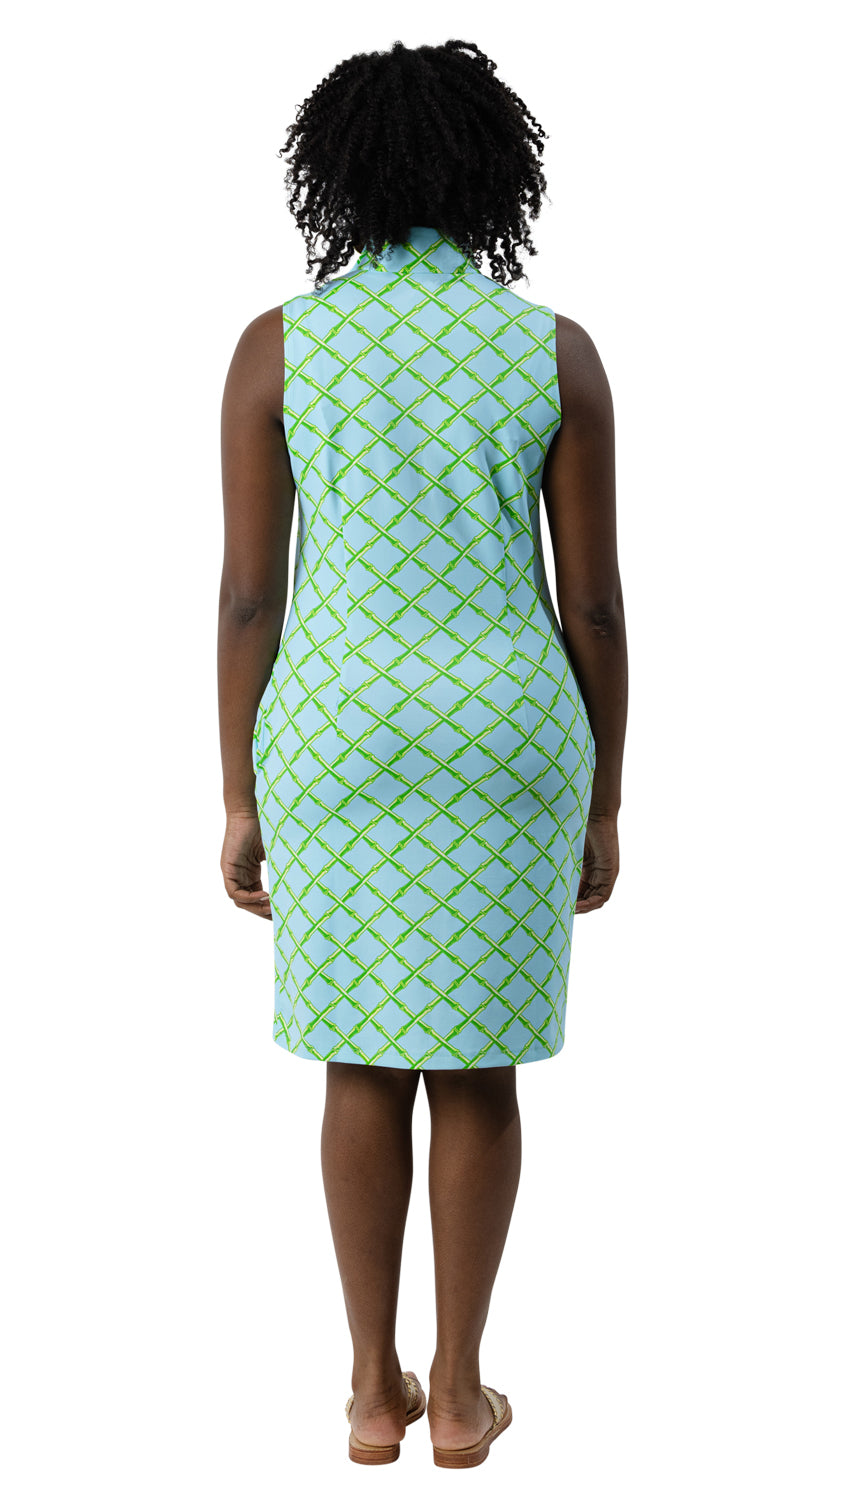 Britt Dress Sleeveless - Turq/Green Bamboo Lattice